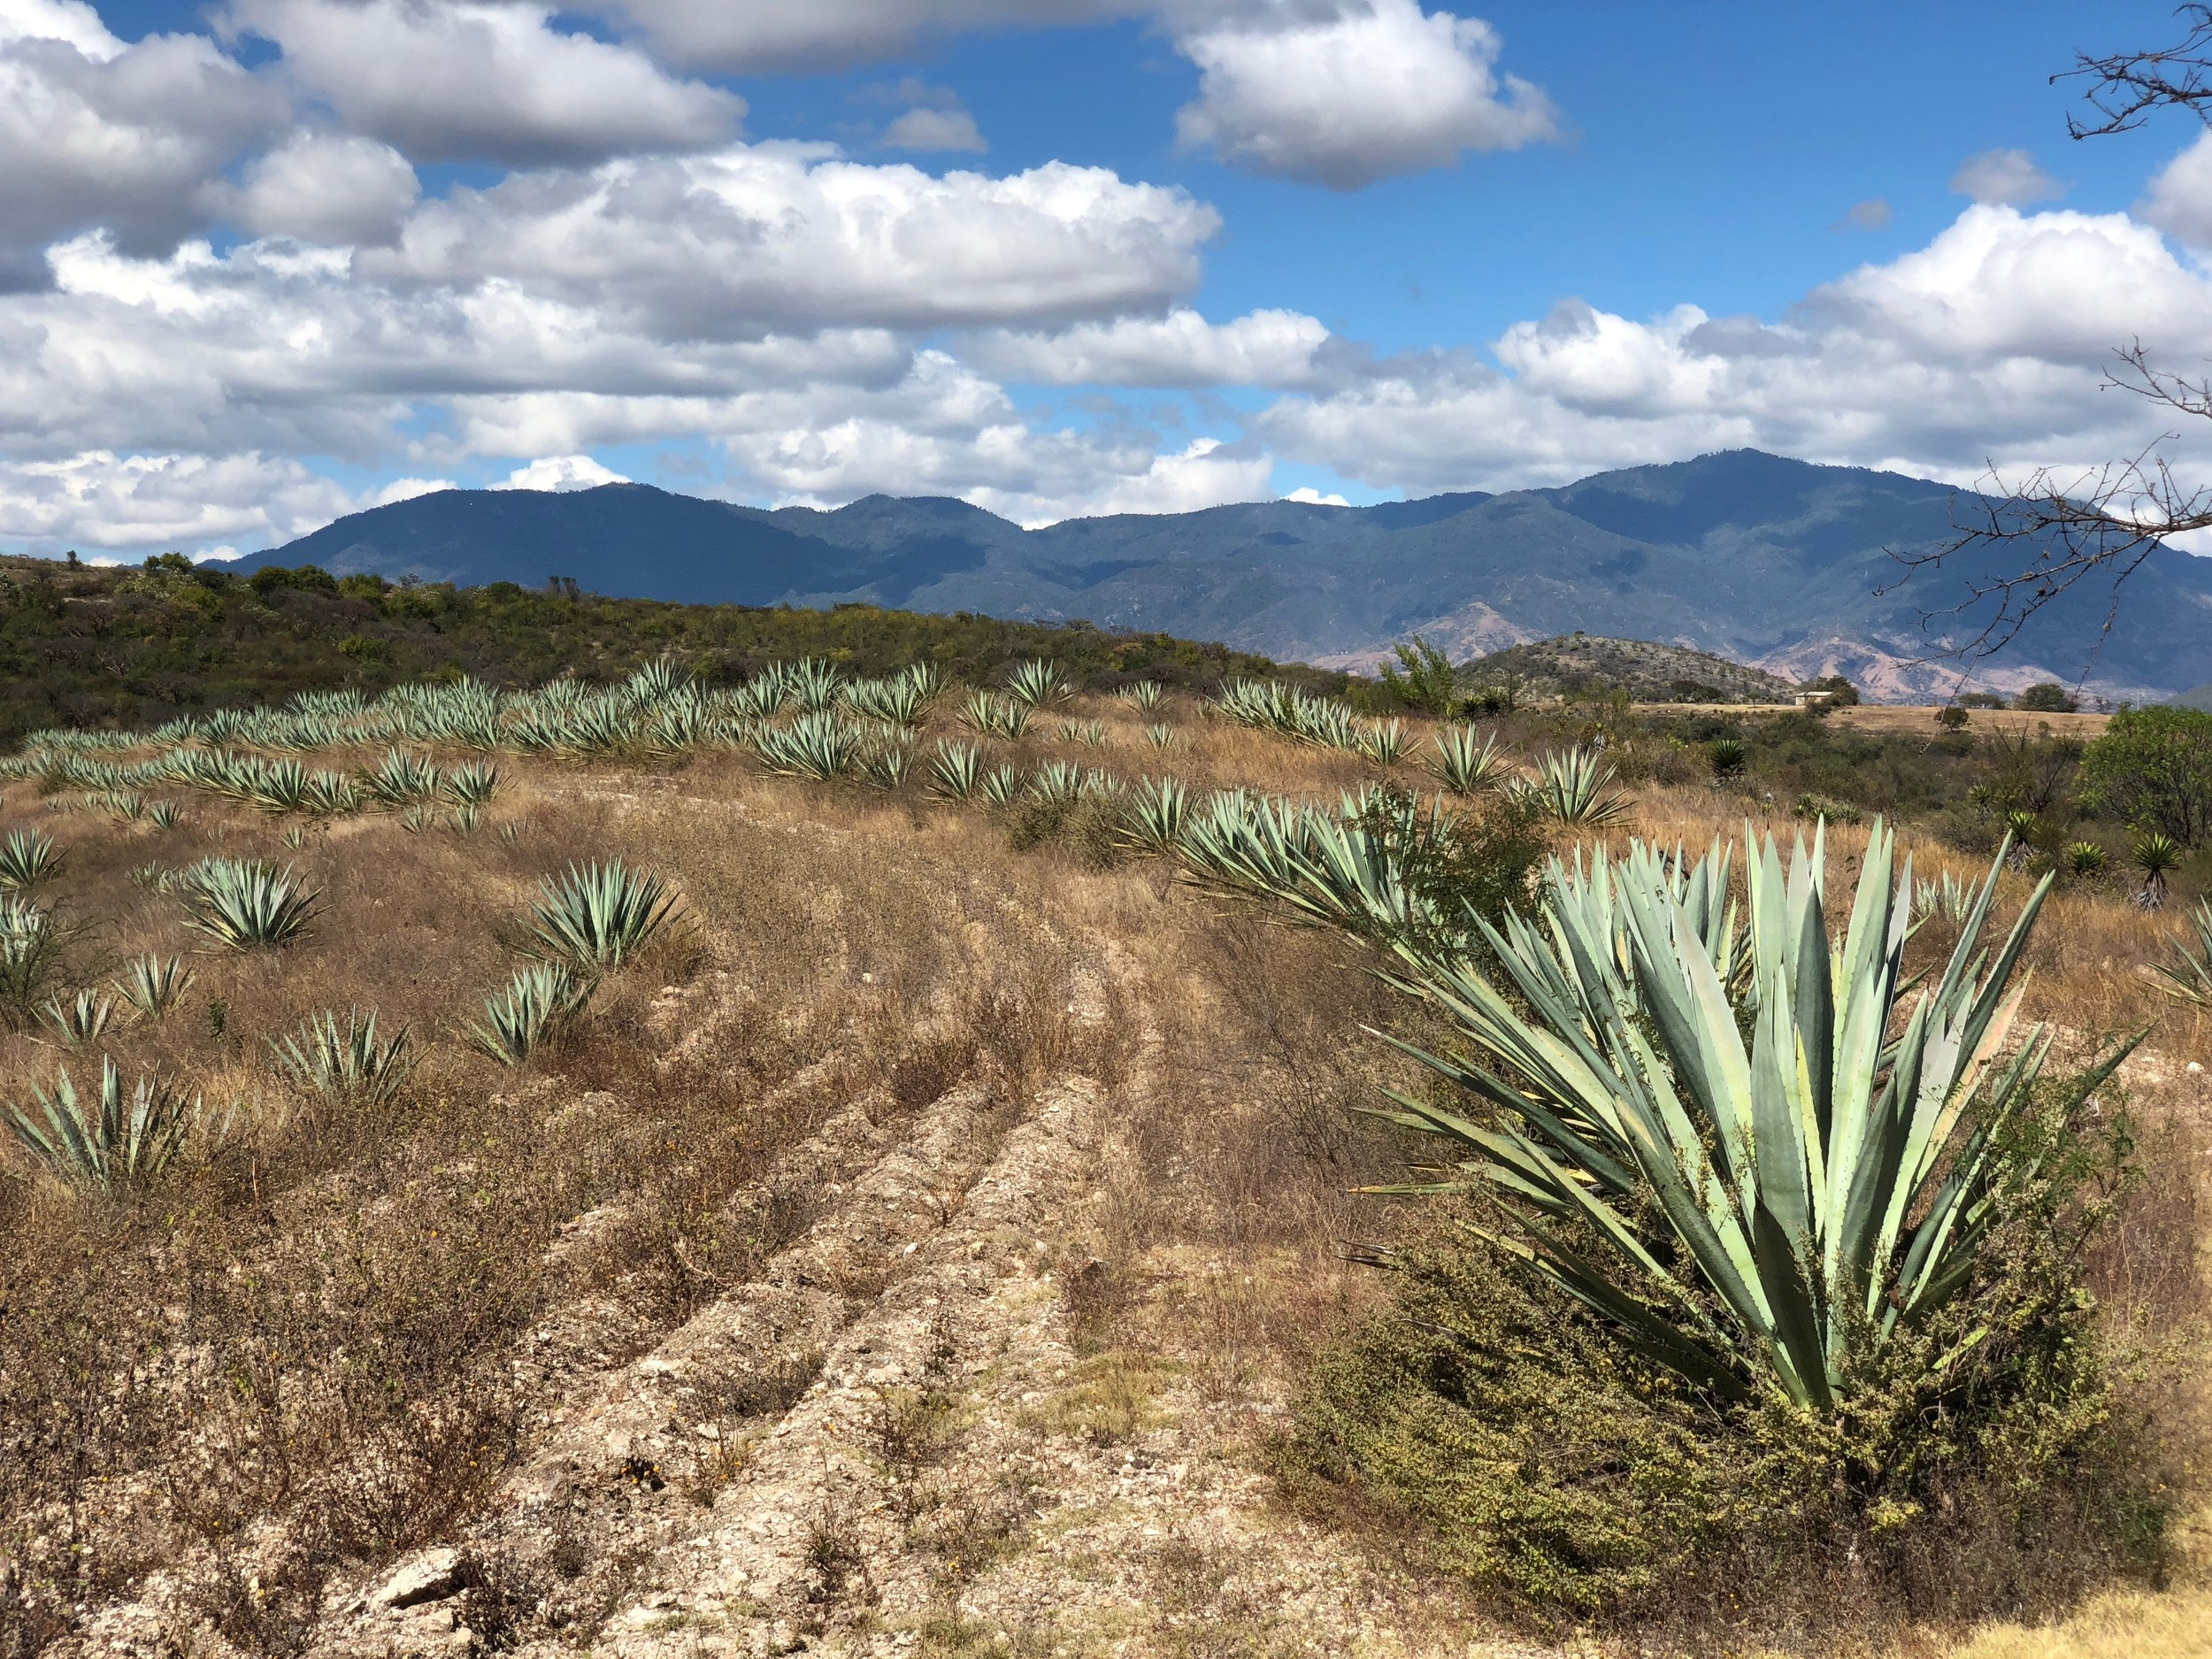 Paquera Mezcal is produced in San Miguel Ejutla, a small Mexican town just outside Oaxaca.